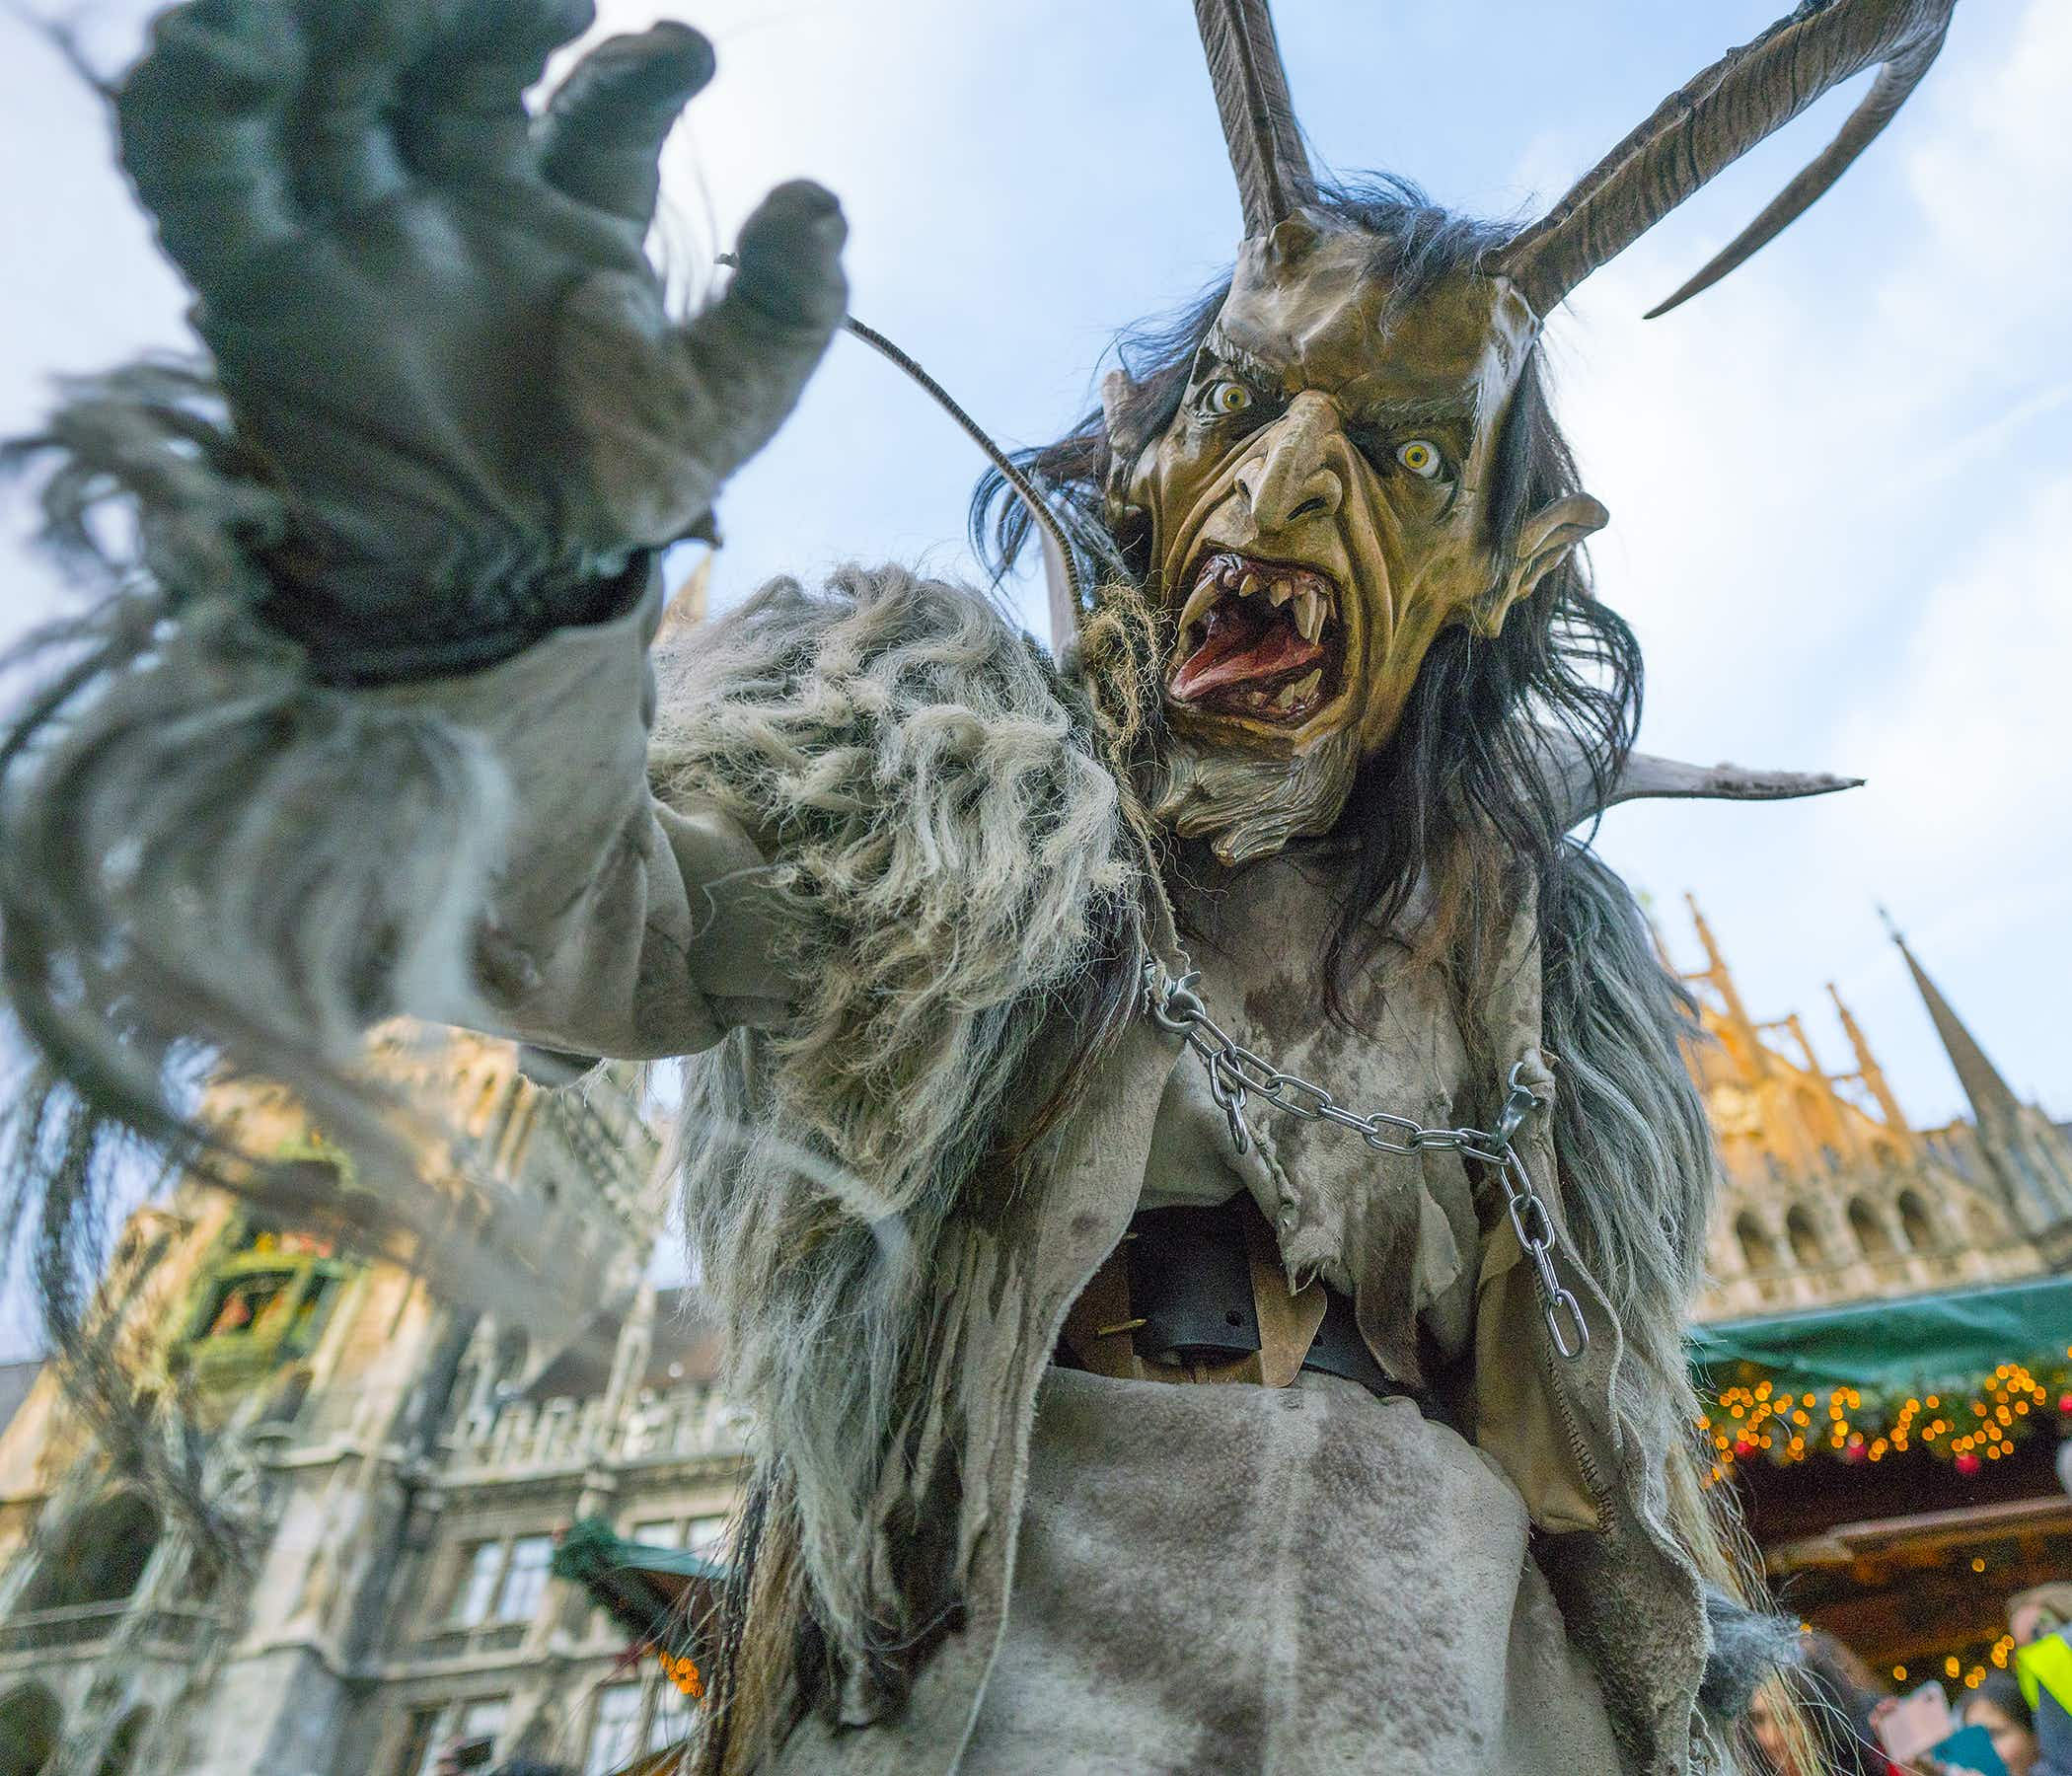 A person dressed as Krampus, the Christmas demon, reaches for the camera while exposing a large tongue and pointy teeth. The Krampus costume also features two large horns protruding from the head and a hairy body